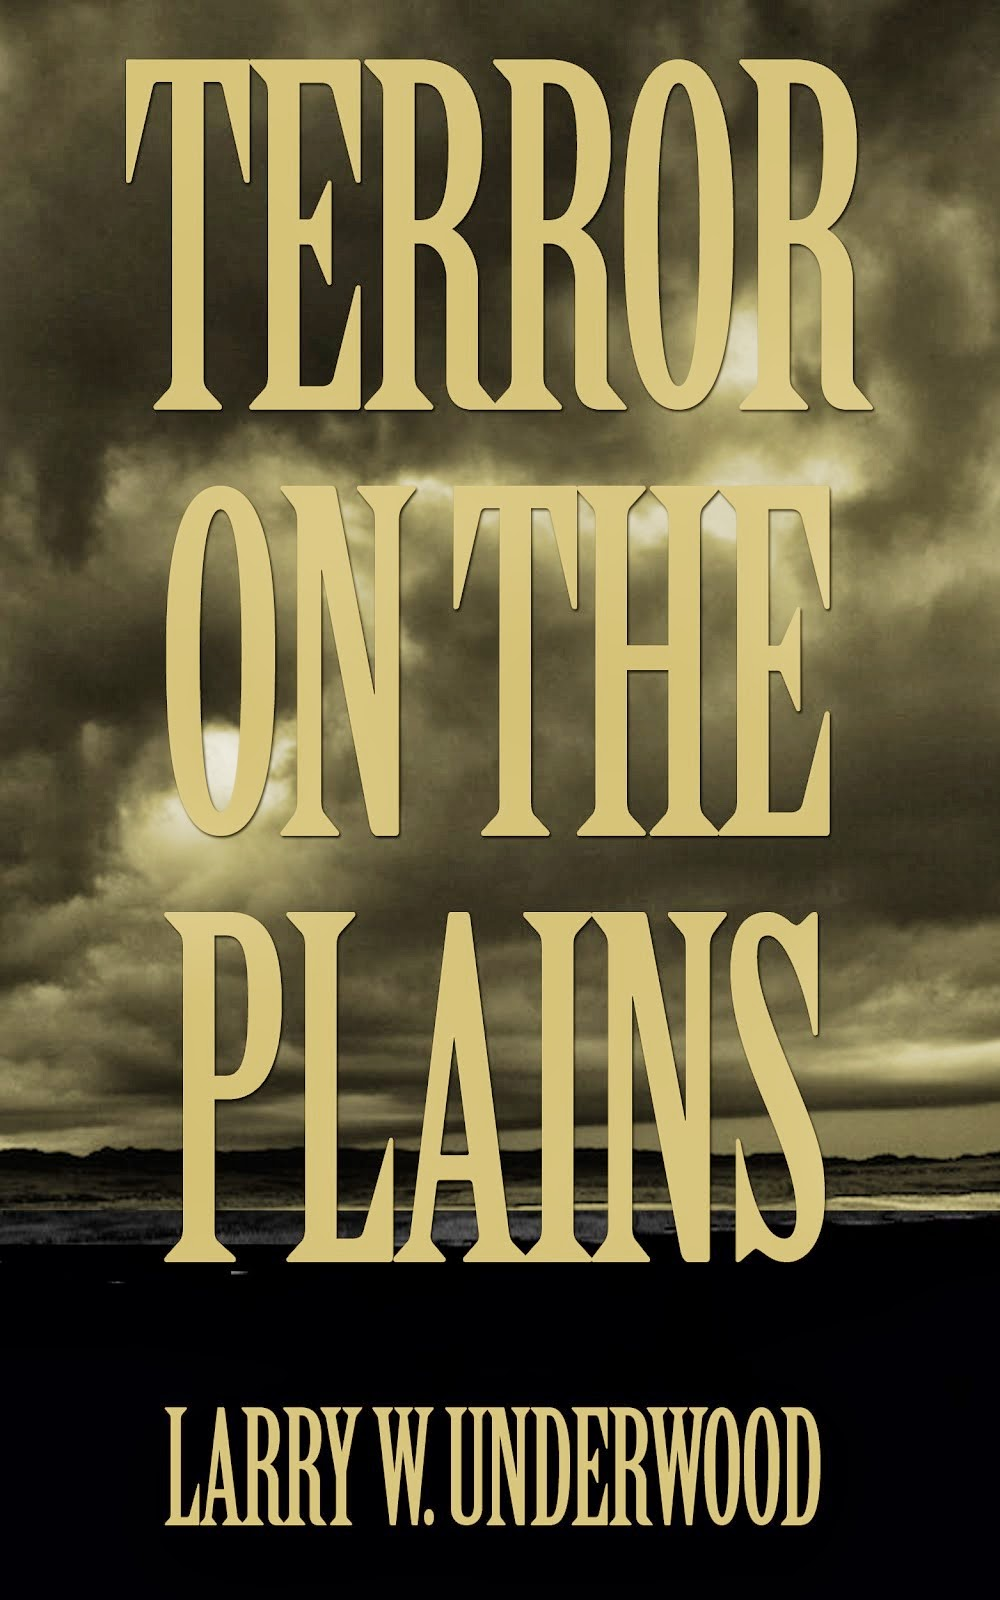 http://beyond-stories.com/post/72668464224/terror-on-the-plains-by-larry-w-underwood-ive